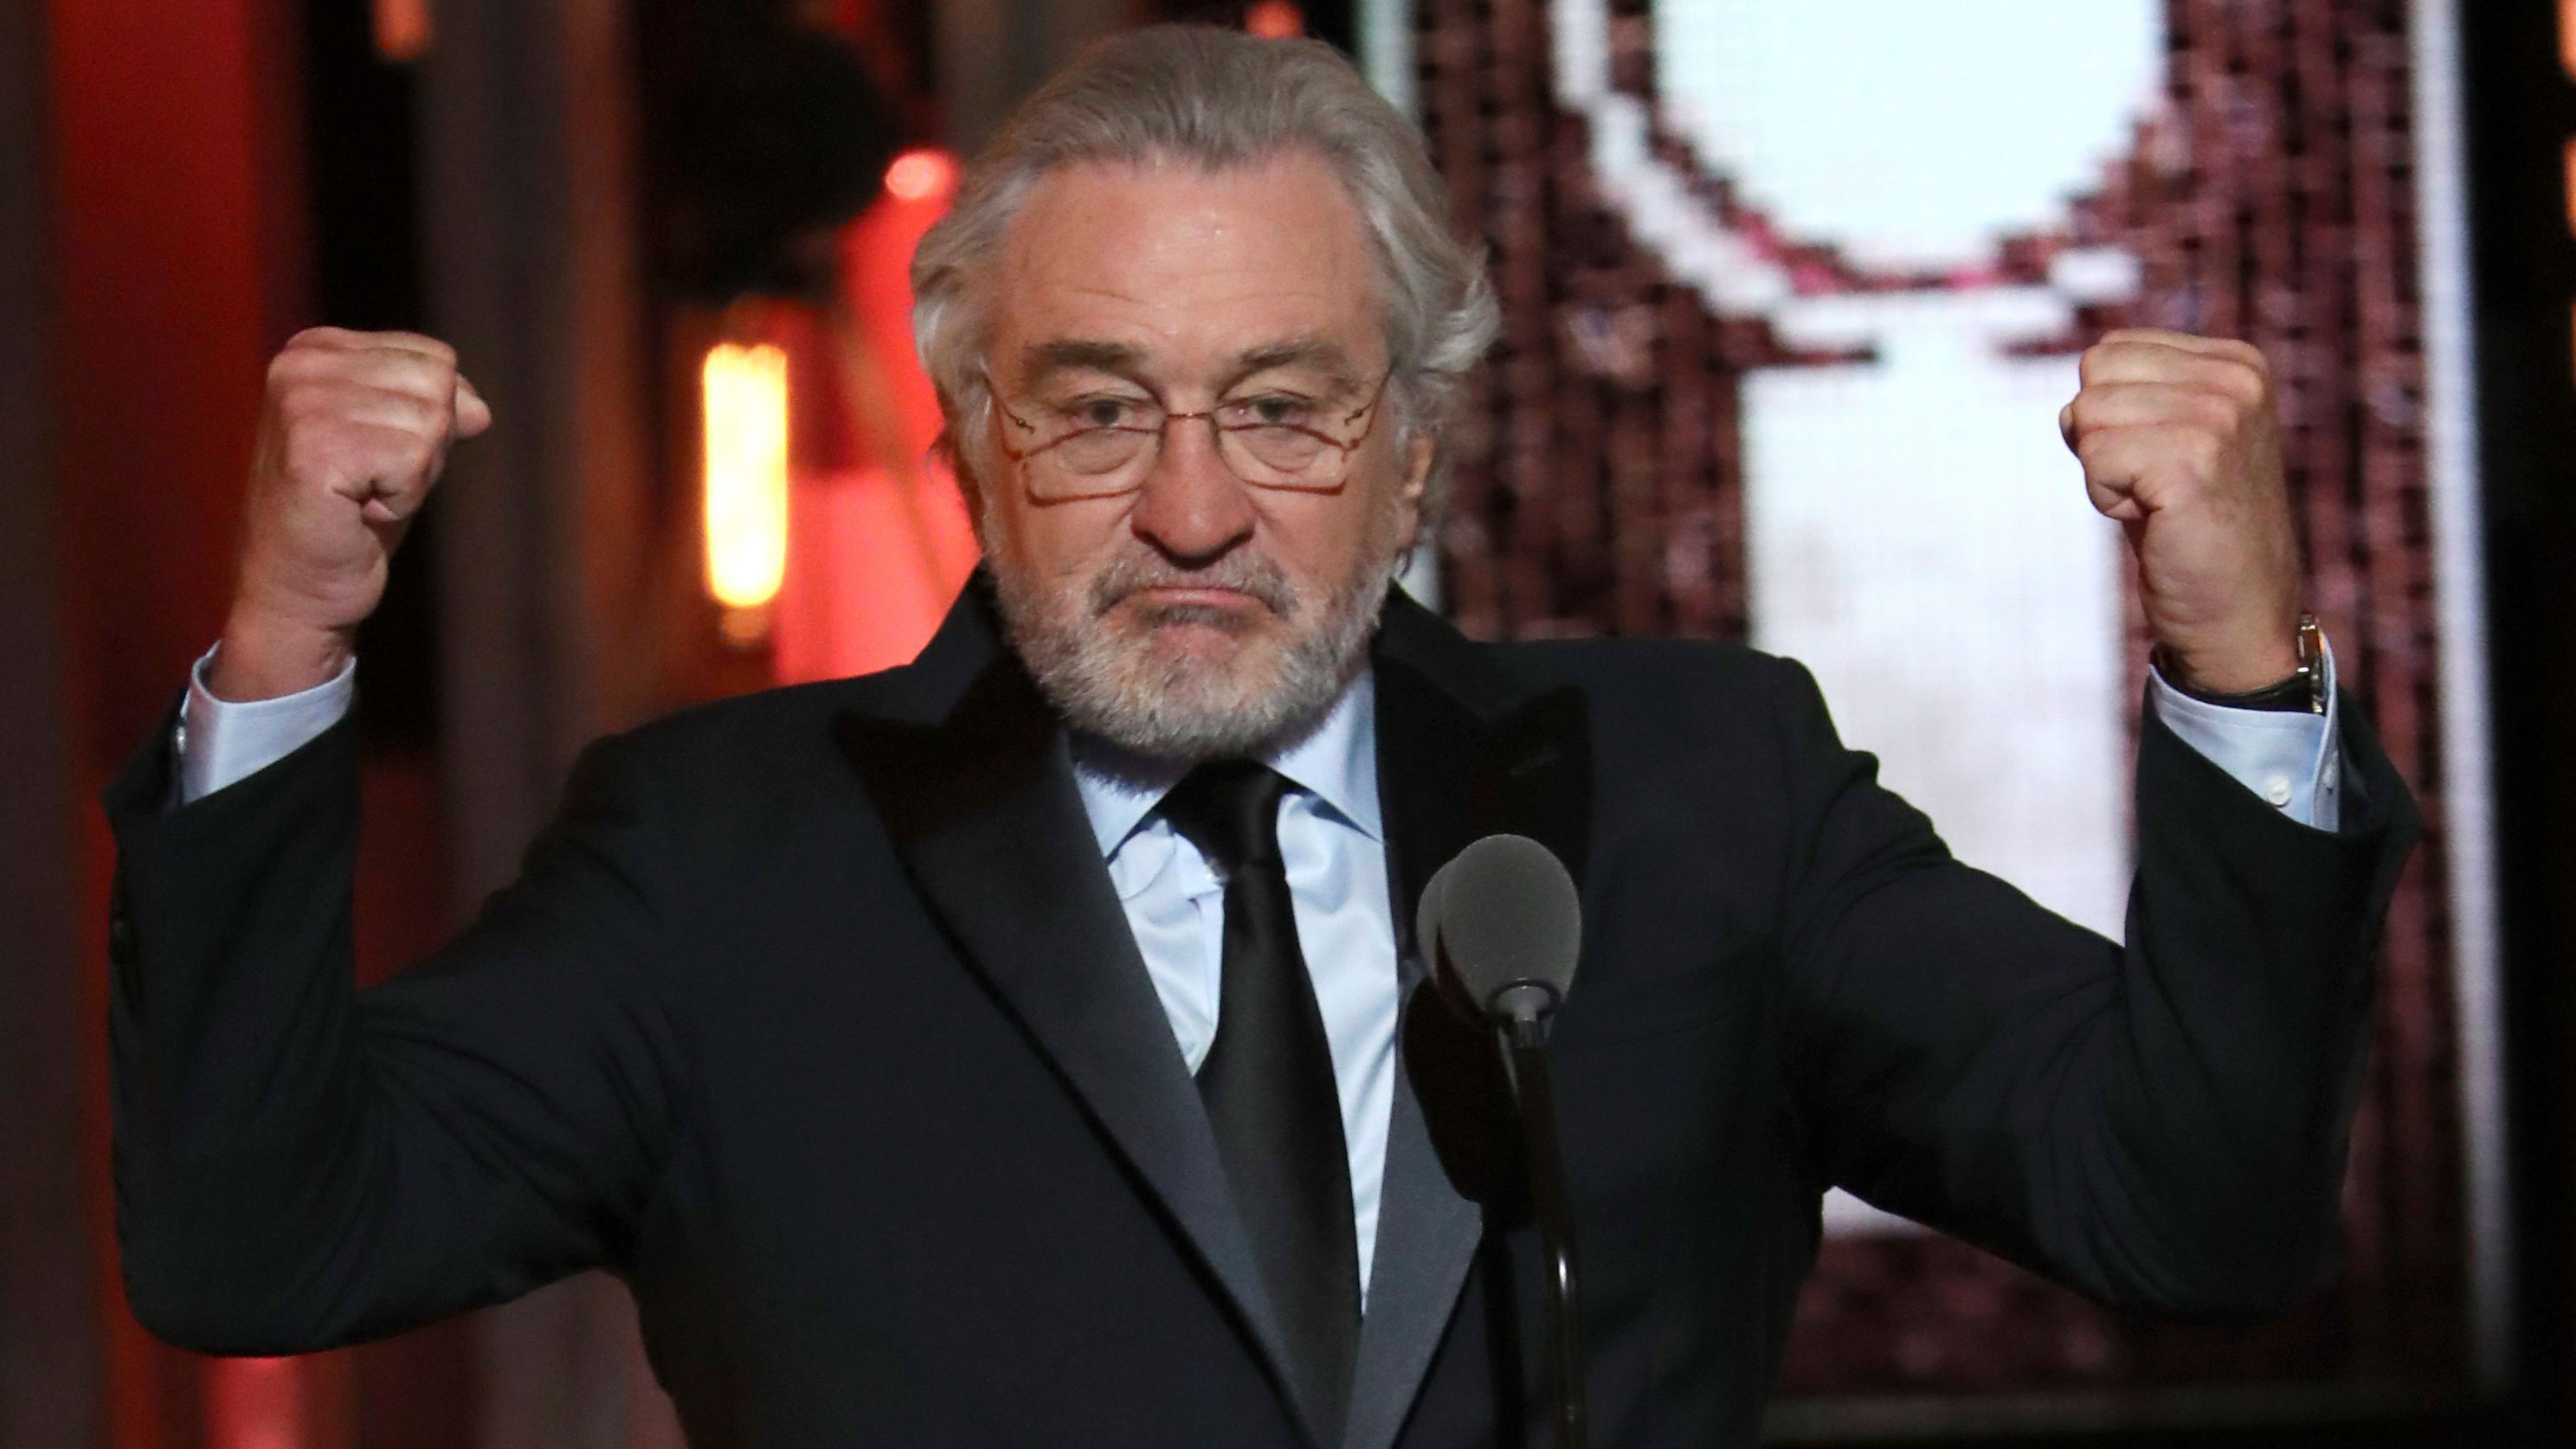 Robert De Niro Yells 'F*** Trump' at Tony Awards, Gets Standing Ovation